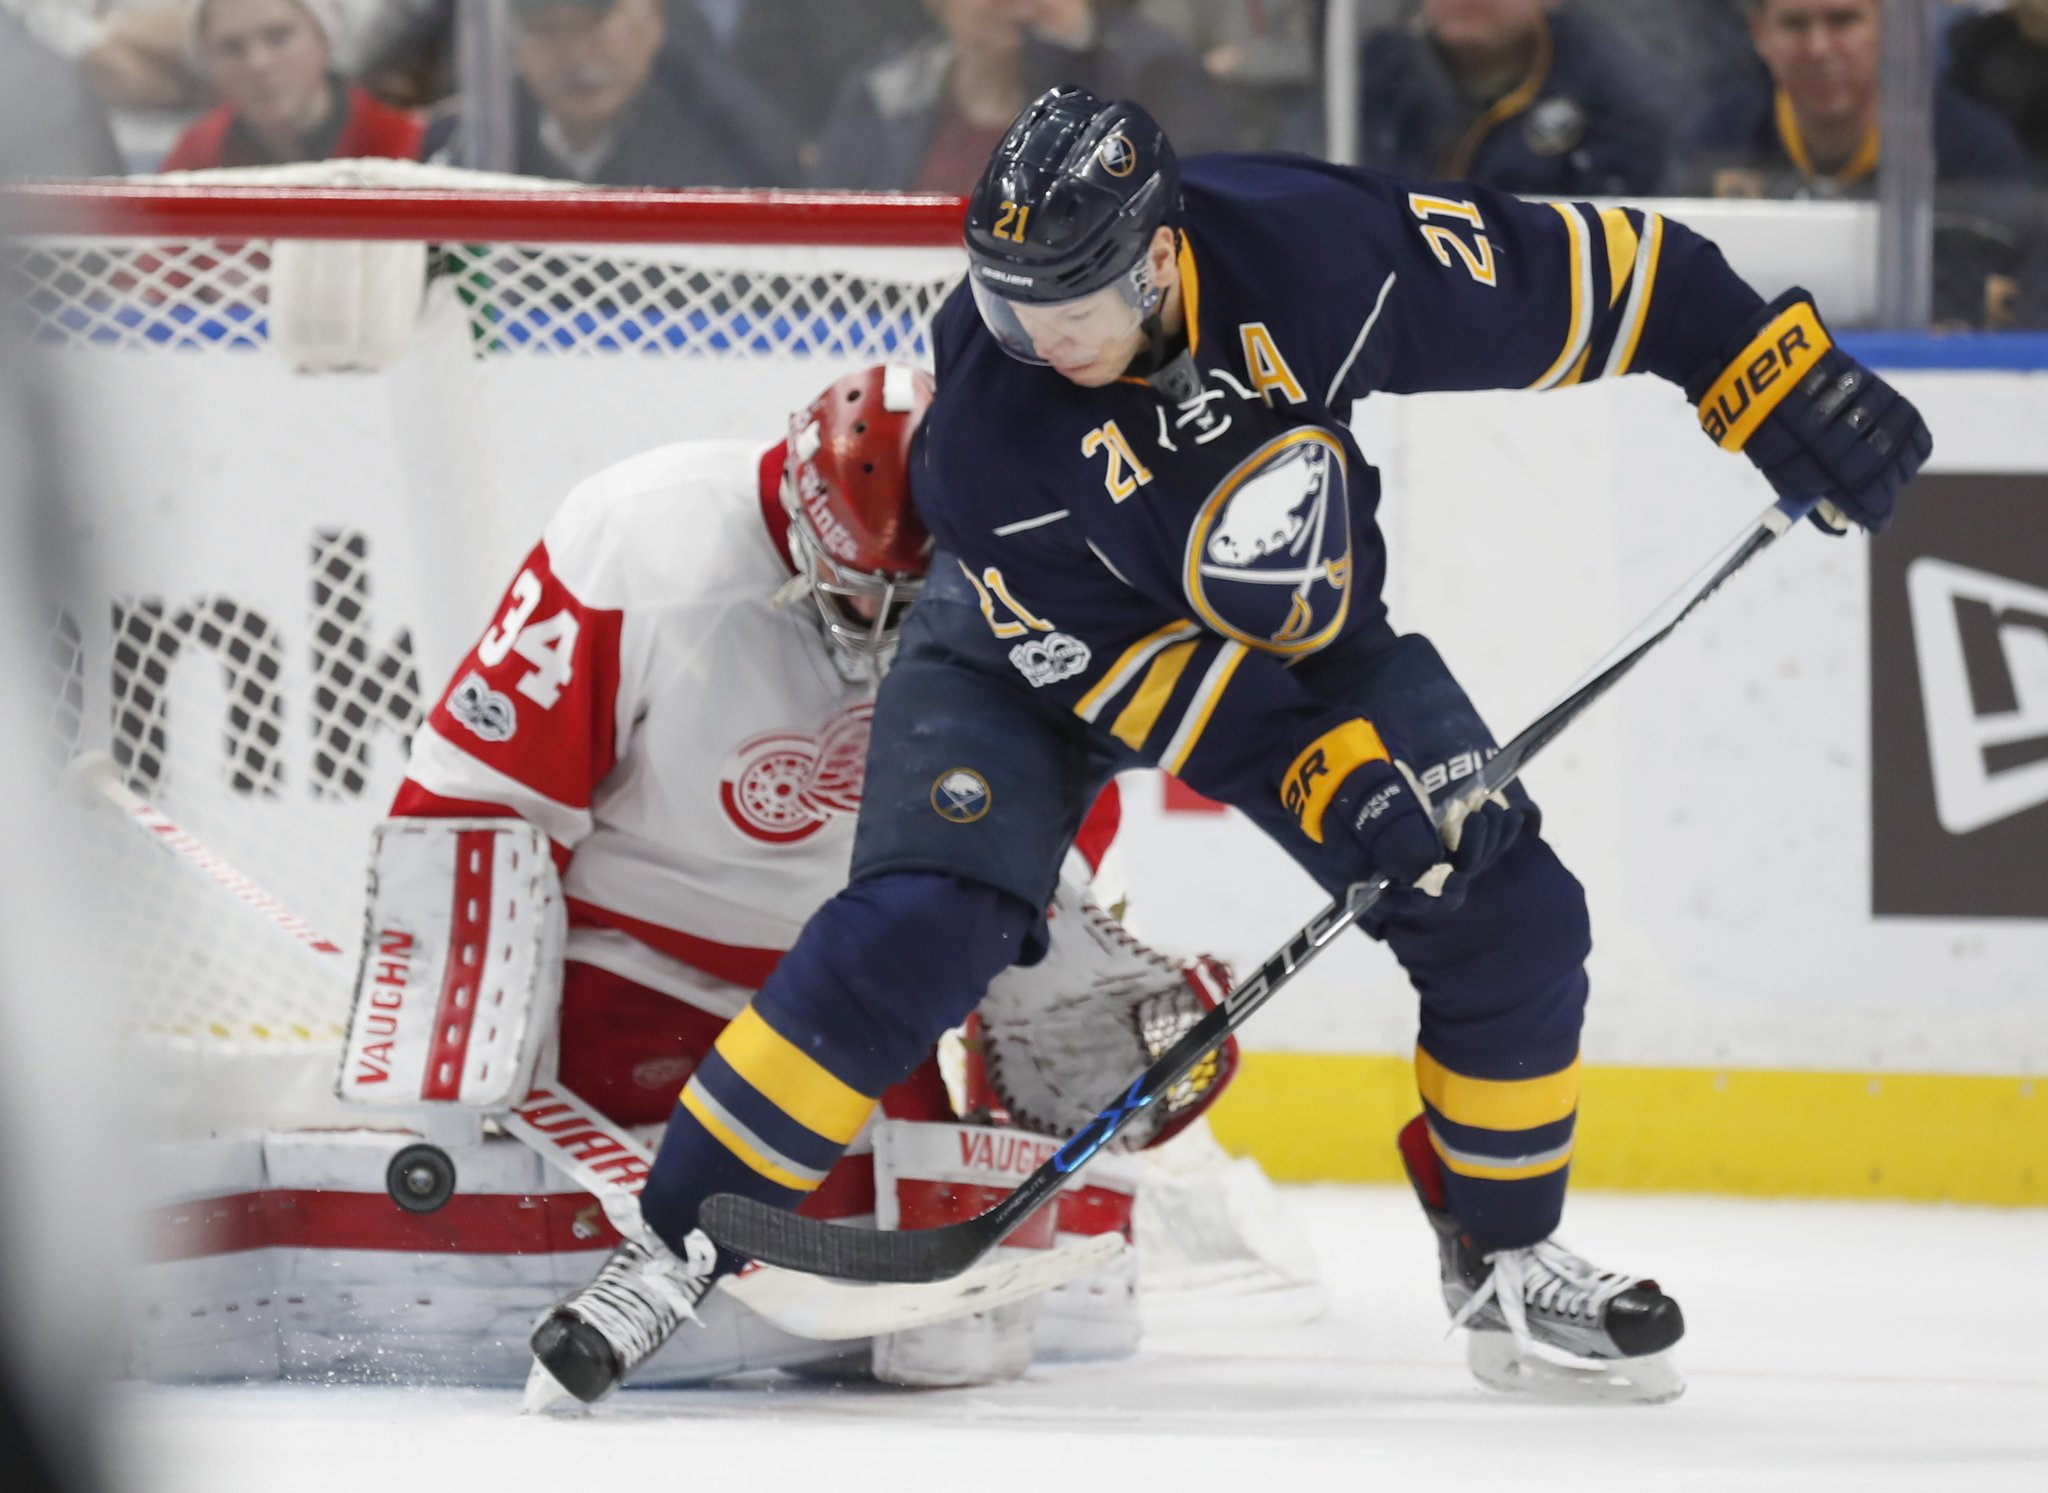 After getting pass from Ryan O'Reilly, Kyle Okposo scores the winner against Petr Mrazek. (Harry Scull Jr./Buffalo News)